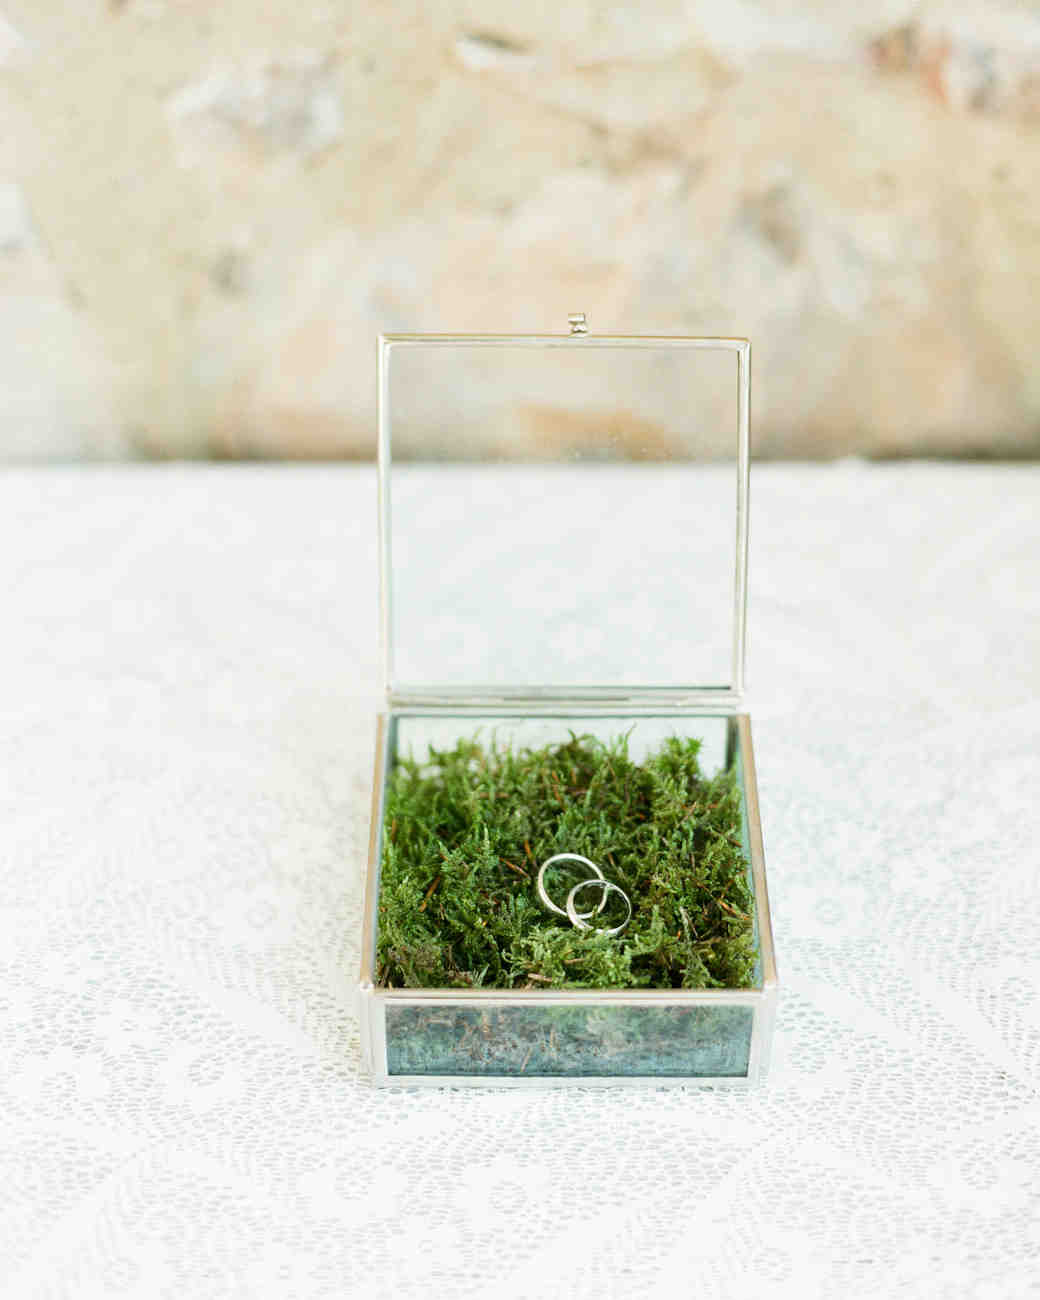 10 Wedding Ring Box Ideas For Converting A Holder Into A Keepsake | Martha  Stewart Weddings